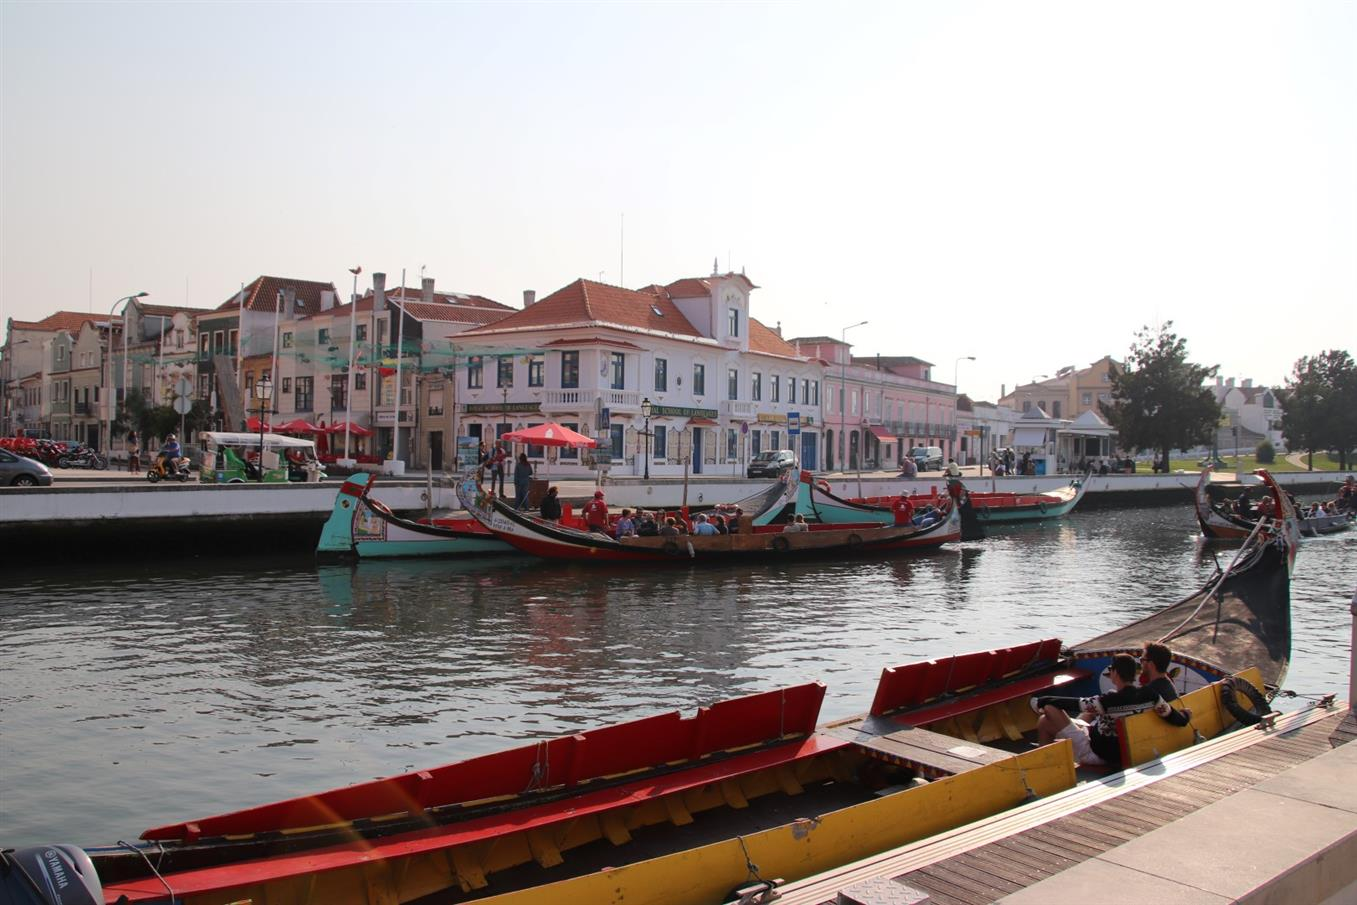 Aveiro canal boats - A typical highlight on your Aveiro day trip